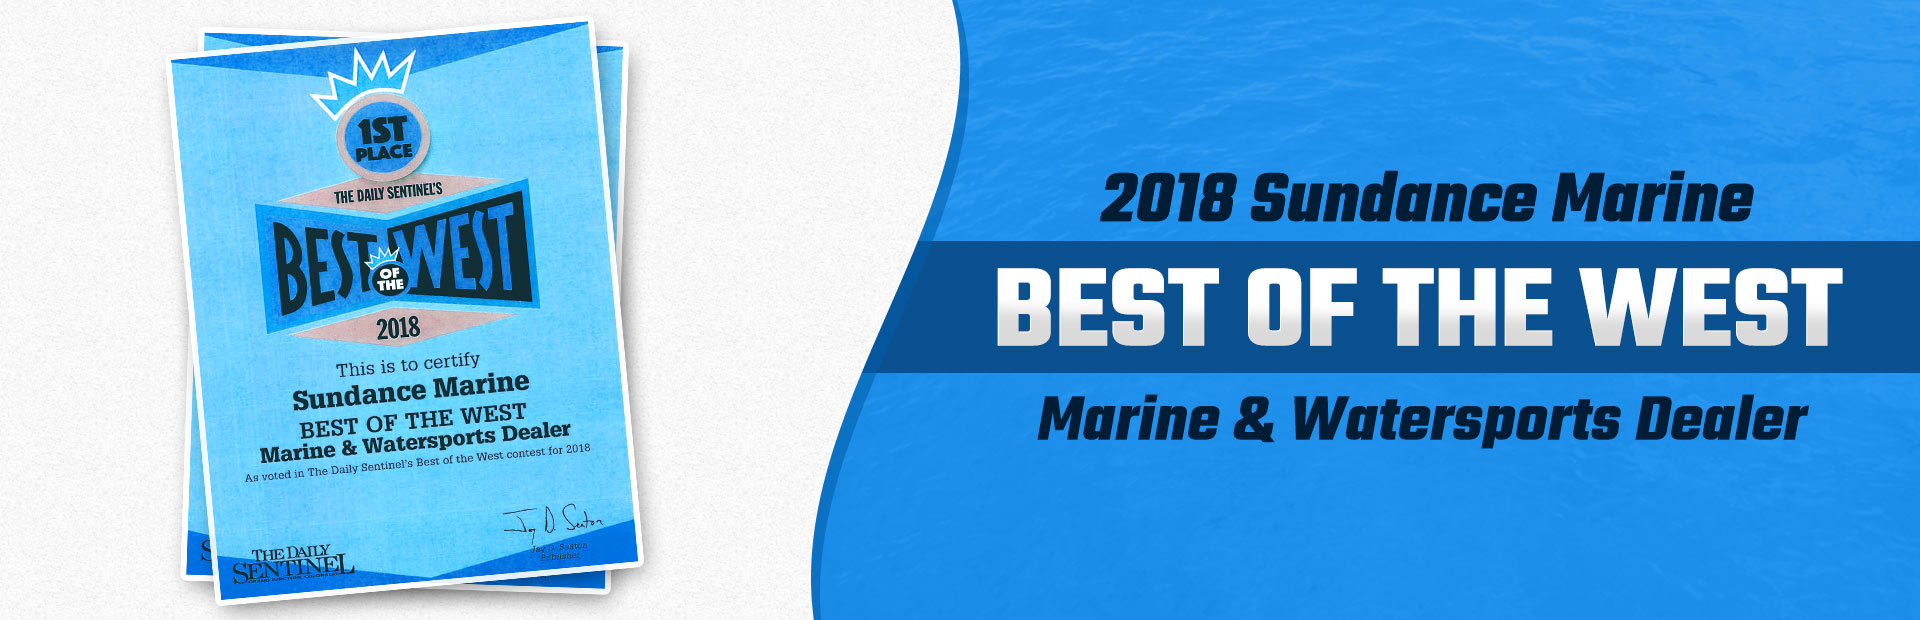 Sundance Marine is the 2018 Best of the West Marine & Watersports Dealer! Click here to learn more.